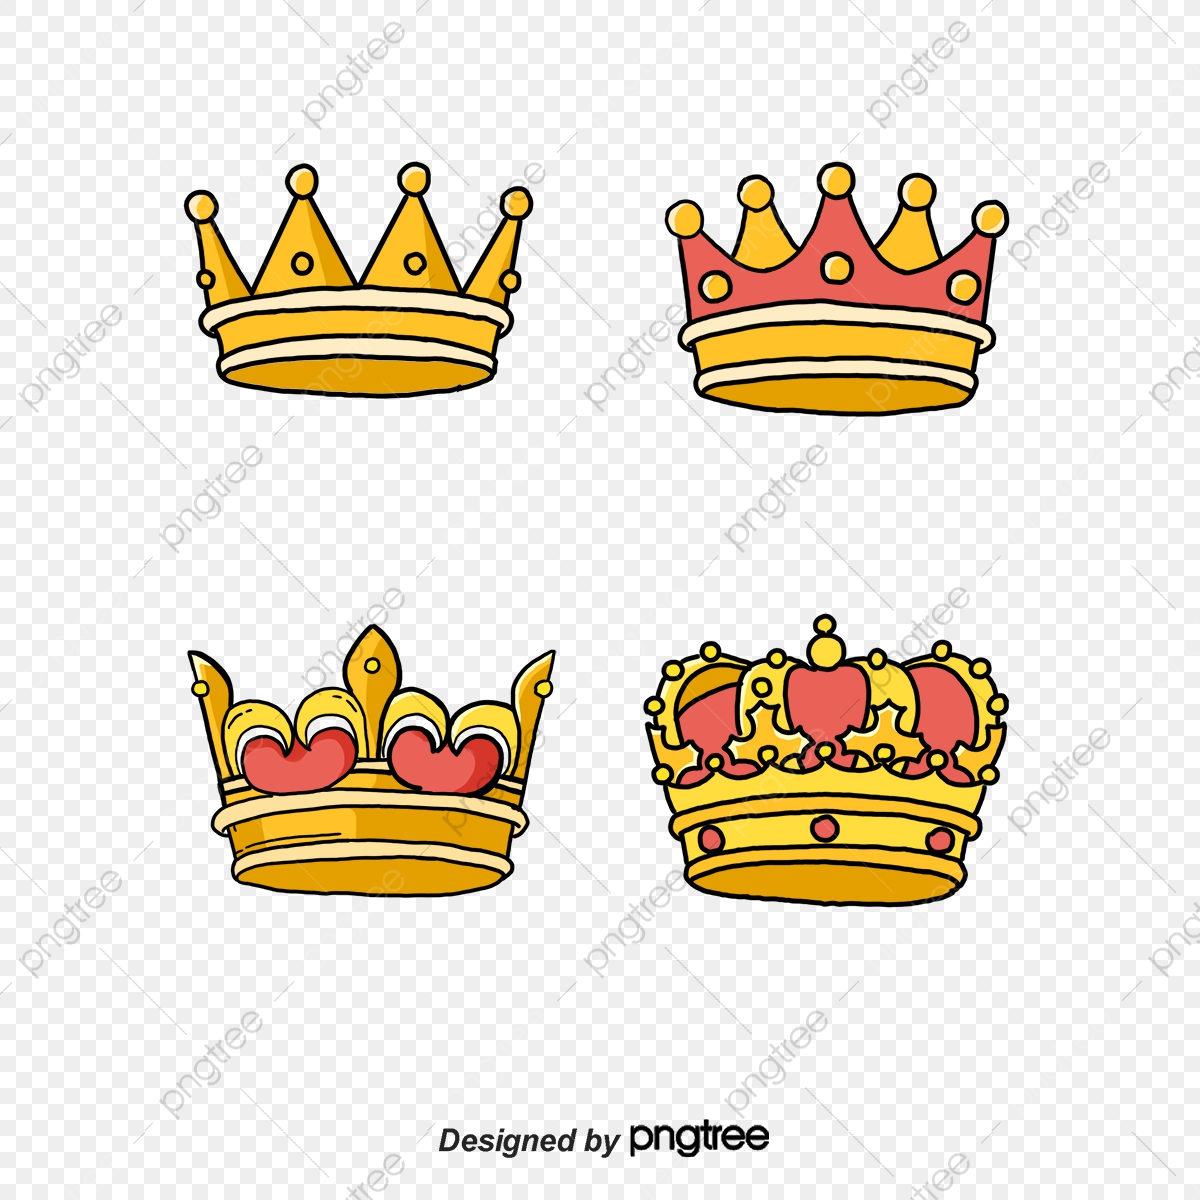 Golden Noble Crown Crown Clipart Cartoon Crown Decorative Pattern Png Transparent Clipart Image And Psd File For Free Download Download this cartoon crown png material, crown clipart, cartoon clipart, cartoon crown png clipart image with transparent background or psd file for free. https pngtree com freepng golden noble crown 3490969 html